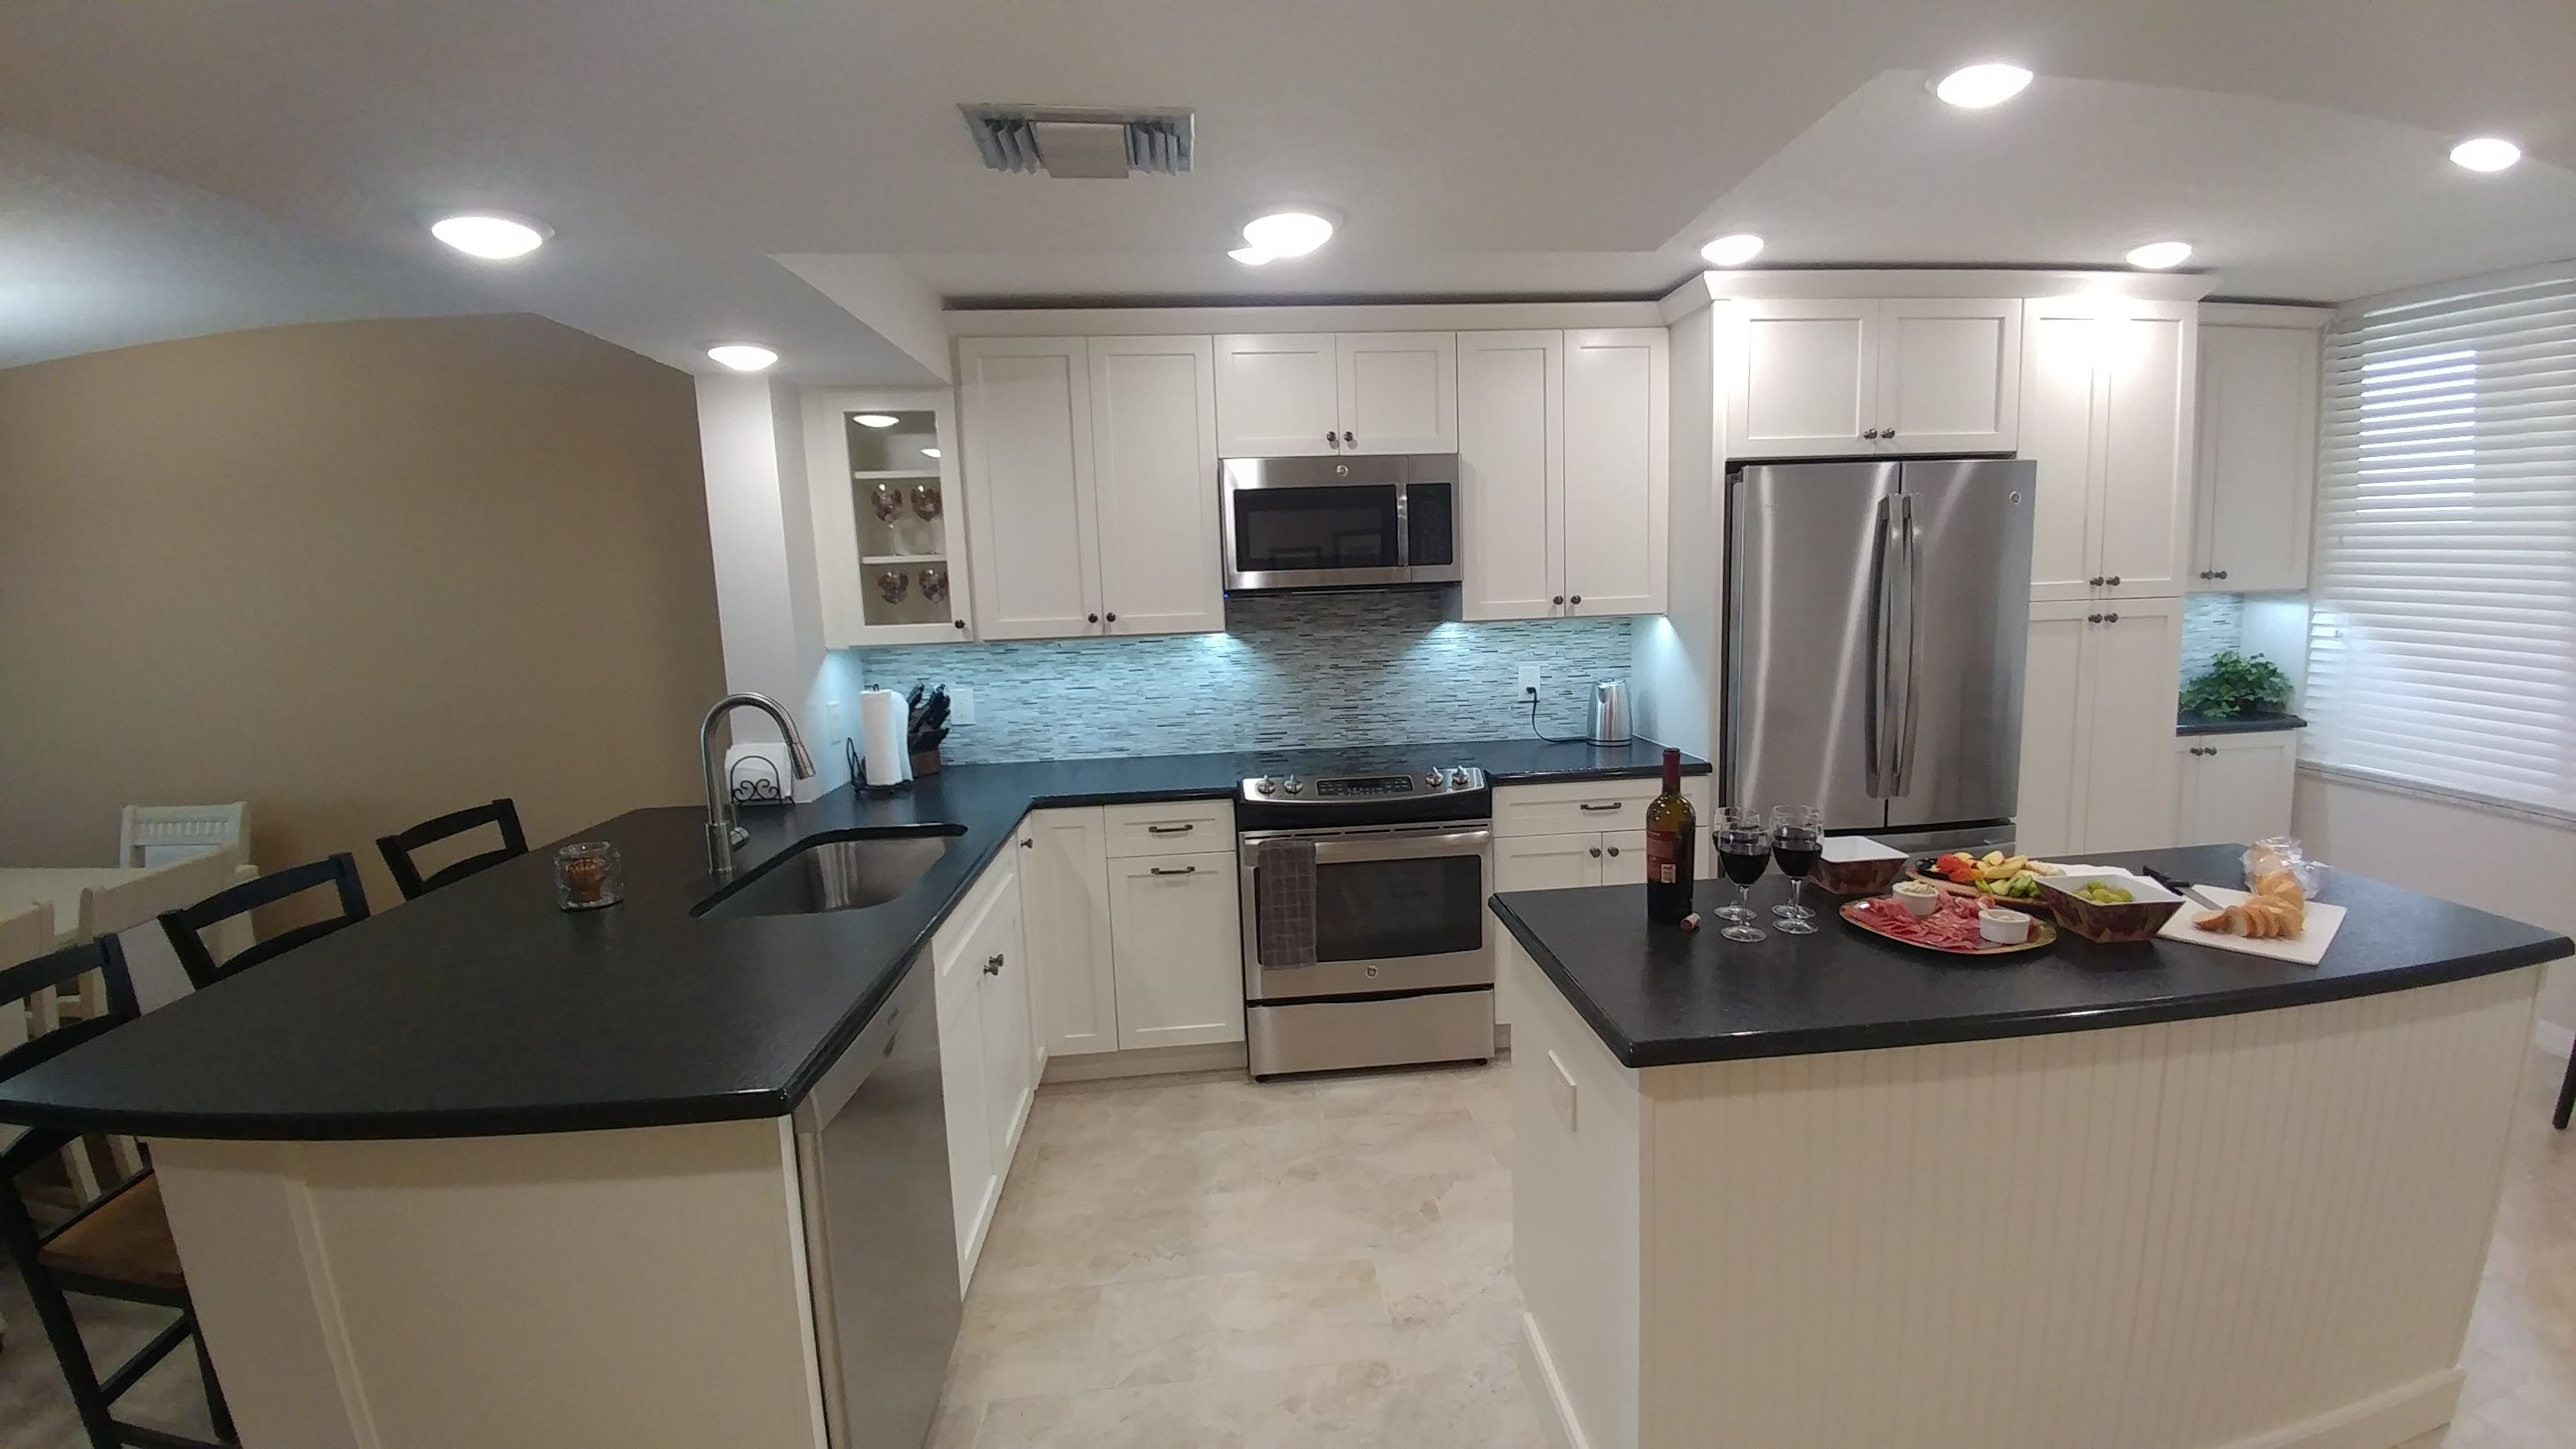 The Kitchen Feels So Much Larger With All Those Walls Removed And Now Our Clients Can See The Gorgeous Gulf Of Mexico Shaker Style Cabinets Leather Granite Shaker Style